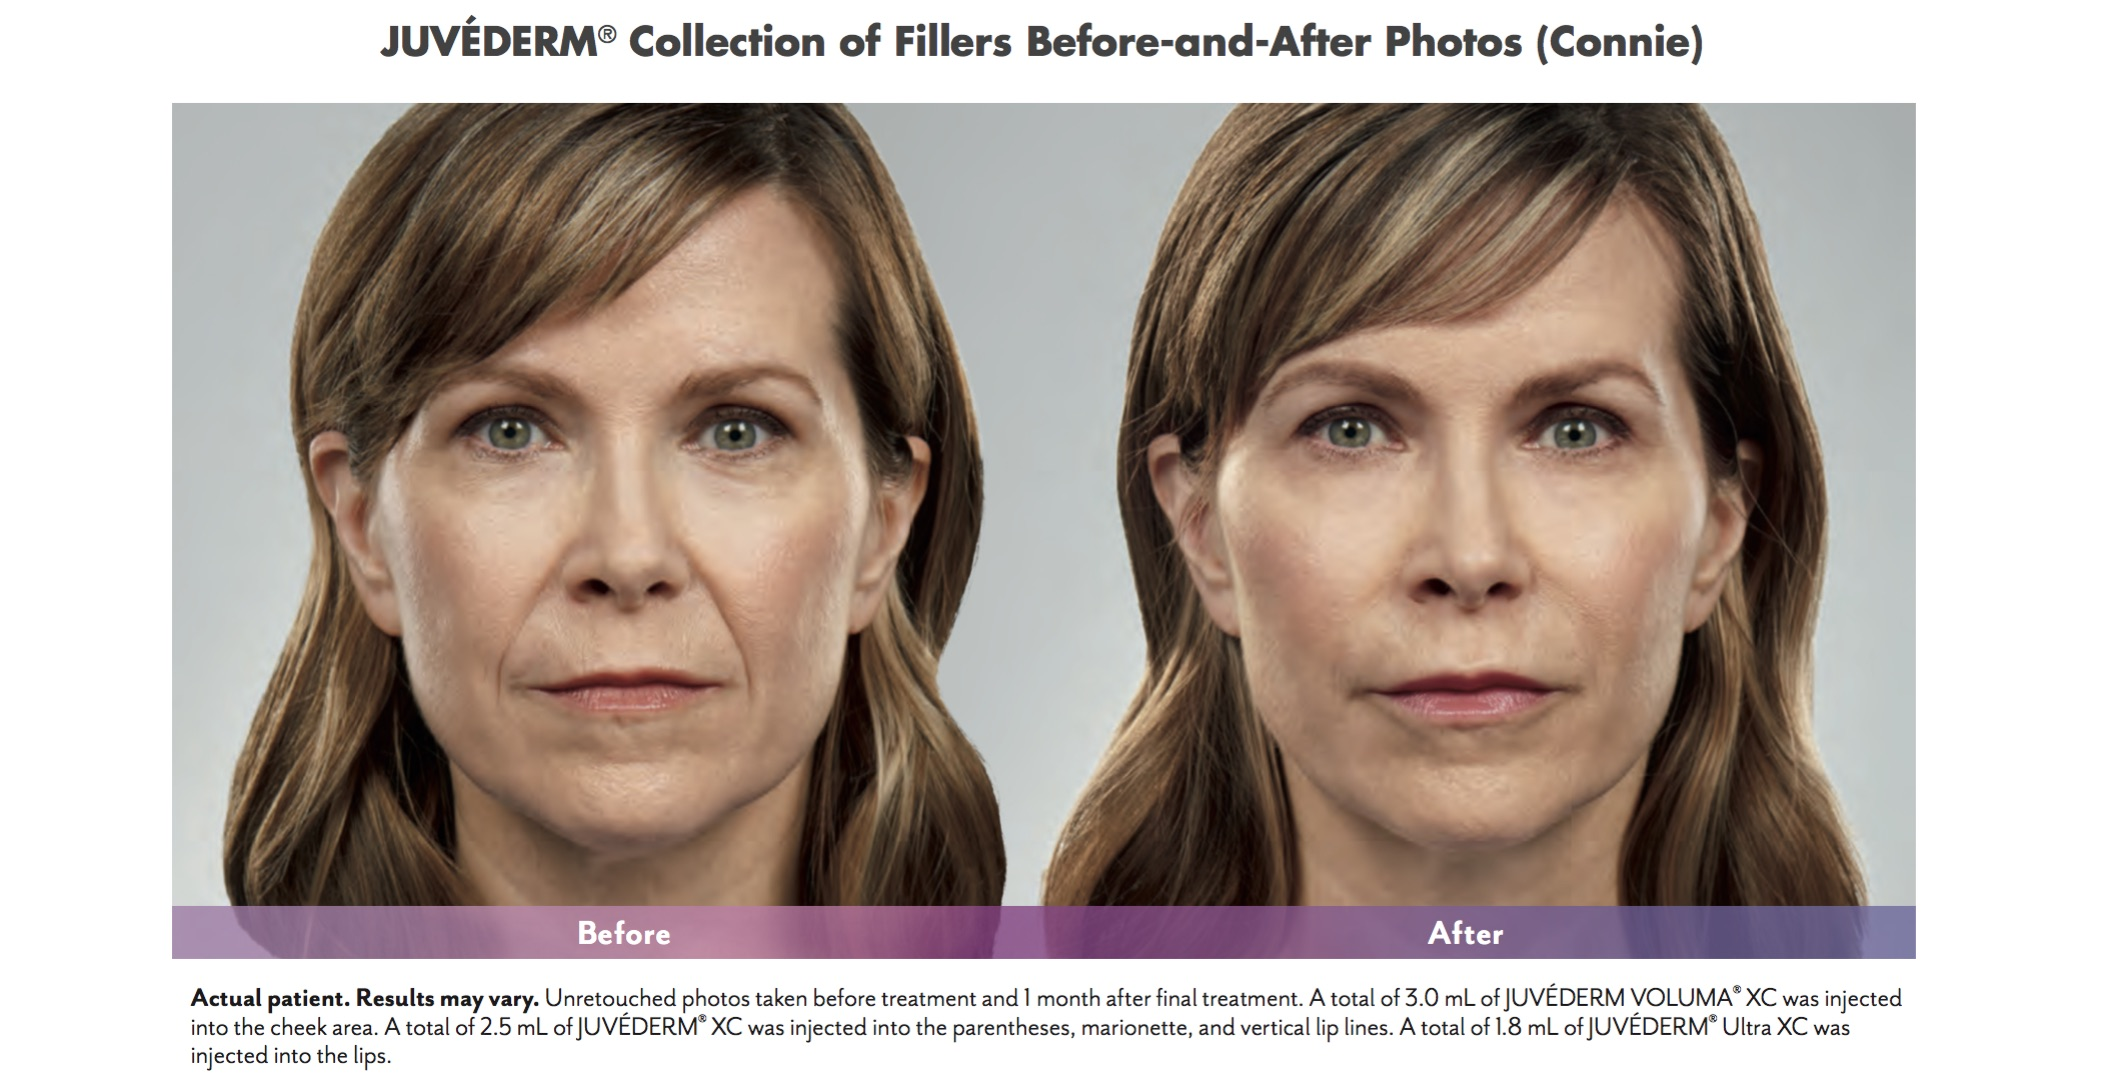 Before and After Juvederm Facial Fillers at New Vitality Medical